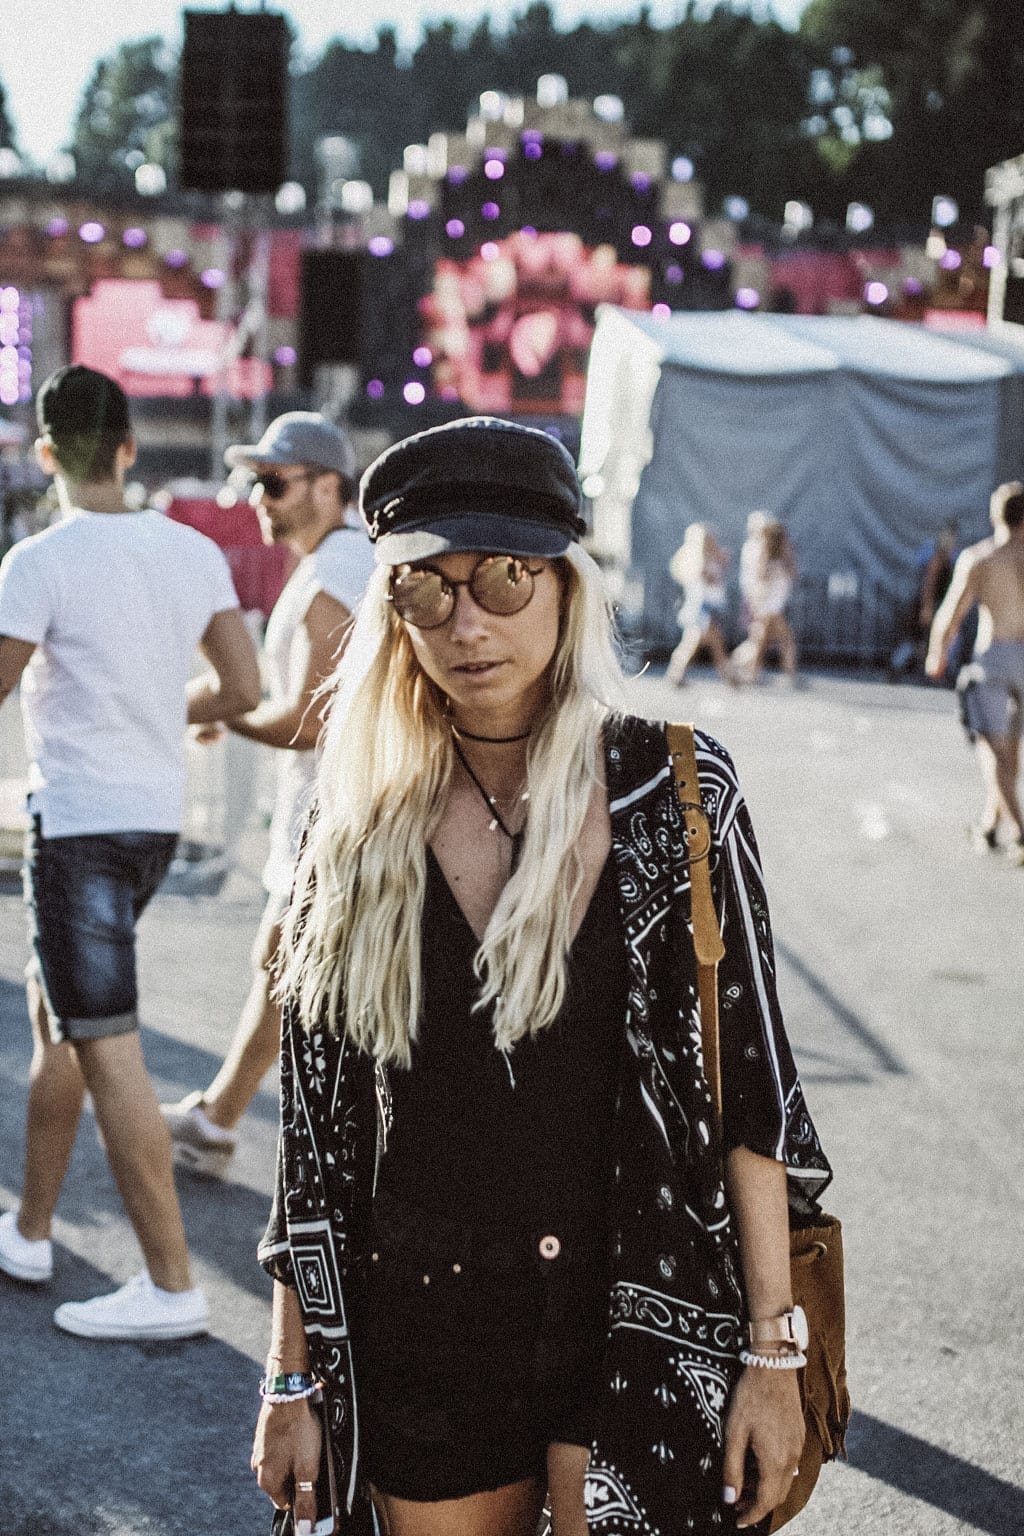 Constantly-K-Karin-Kaswurm-Fashion-electric-love-festival-2016-salzburg-street-stlye-9087